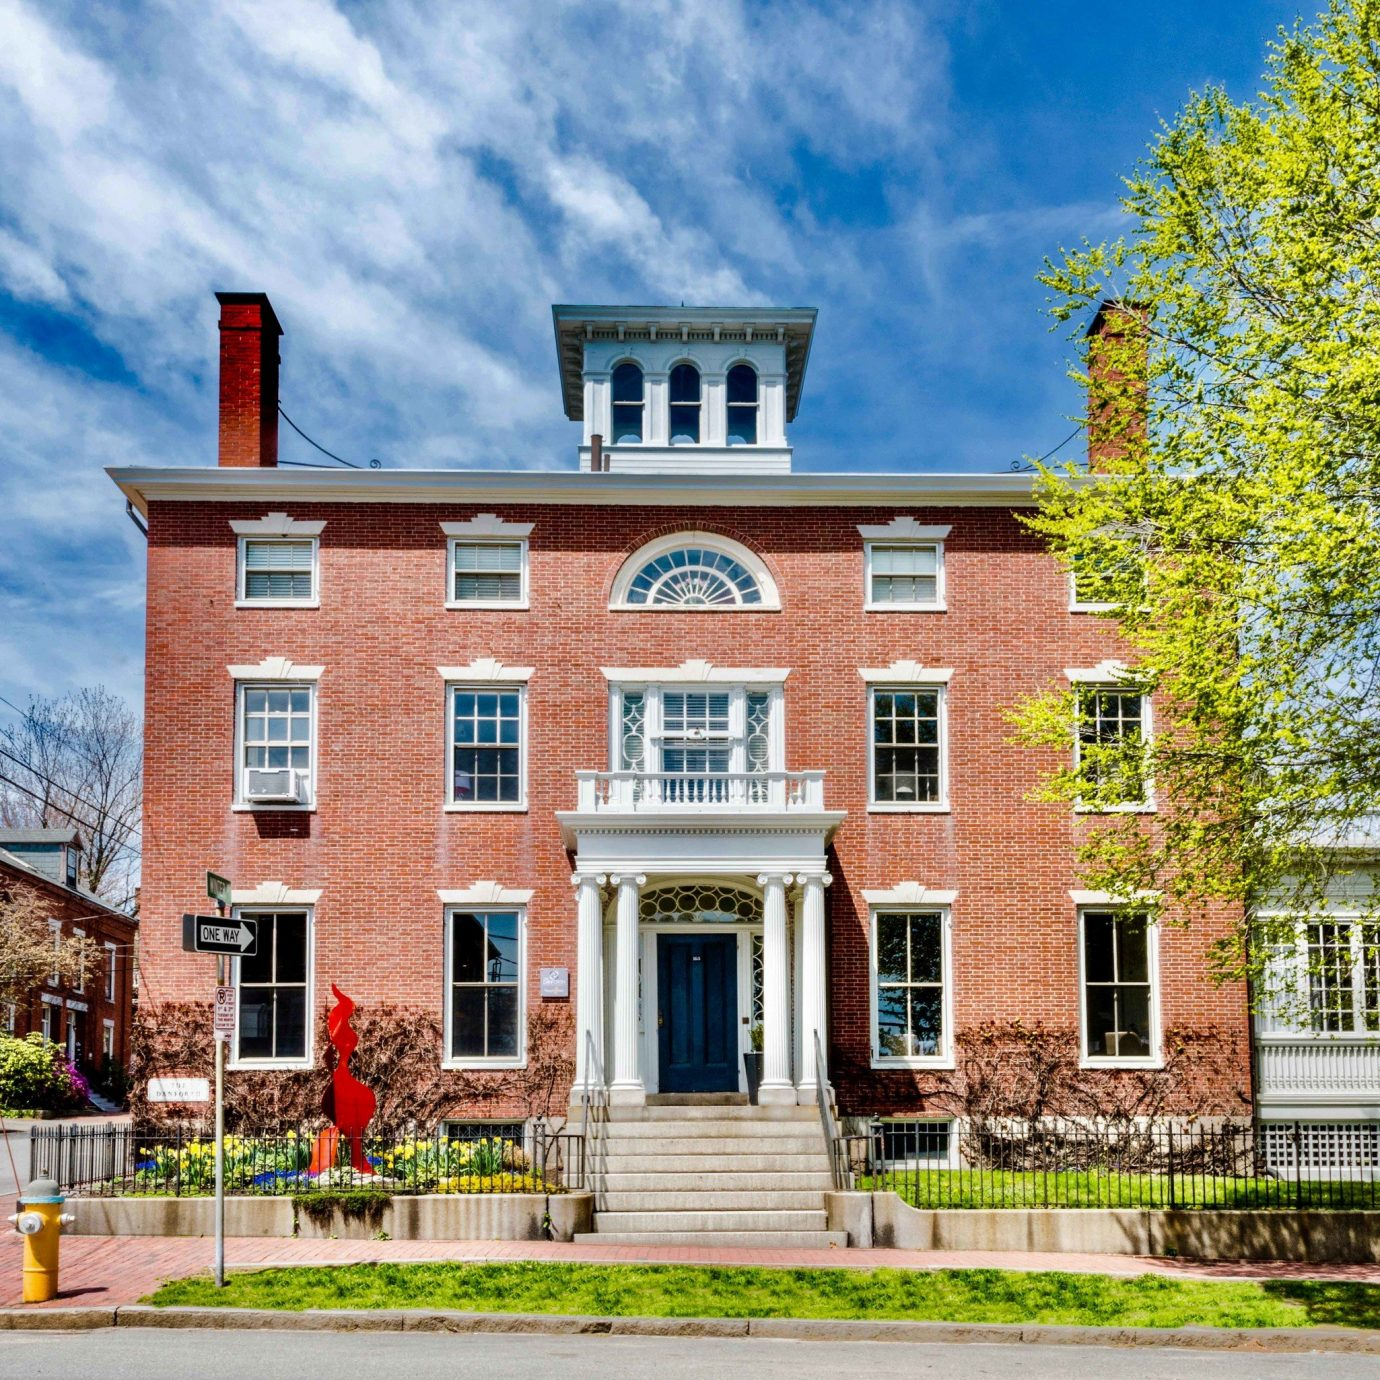 Trip Ideas building sky home property house landmark mansion Town neighbourhood residential area mixed use historic house City college tree cottage suburb condominium campus north american fraternity and sorority housing elevation